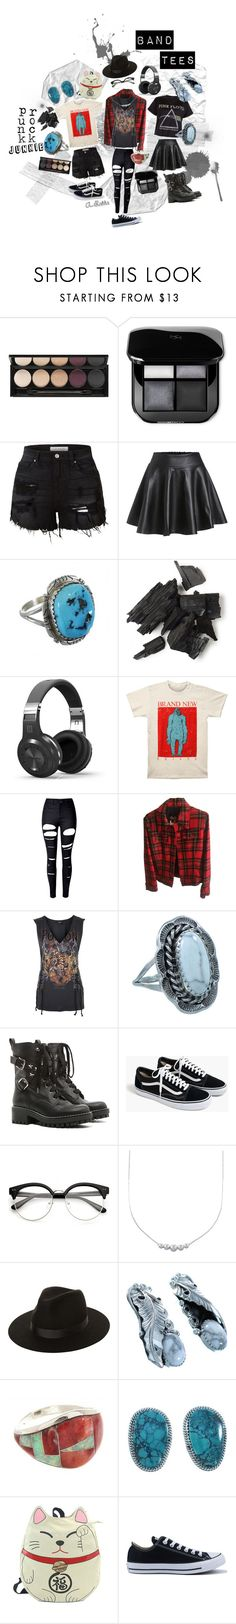 """""""☢ Band Tees, Please! ☠"""" by silvertribe ❤ liked on Polyvore featuring Witchery, LE3NO, WithChic, Dolce&Gabbana, Topshop, RED Valentino, J.Crew, Lack of Color, Sleepyville Critters and Converse"""